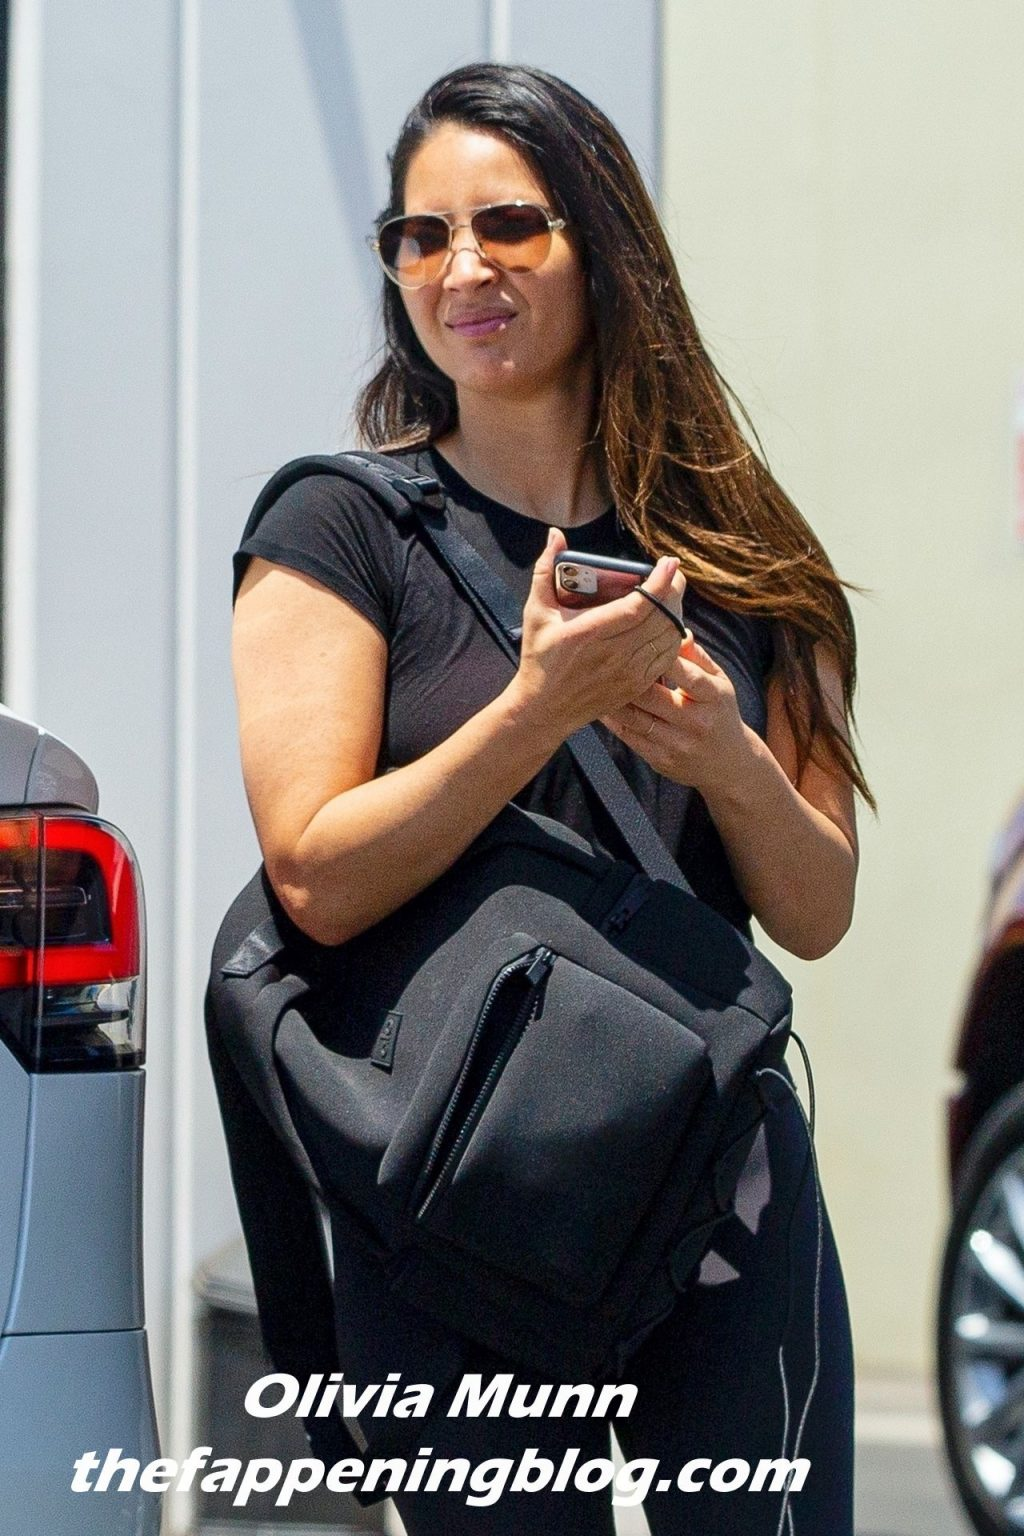 Olivia Munn Is Pictured Leaving a Private Gym Session in LA (16 Photos)